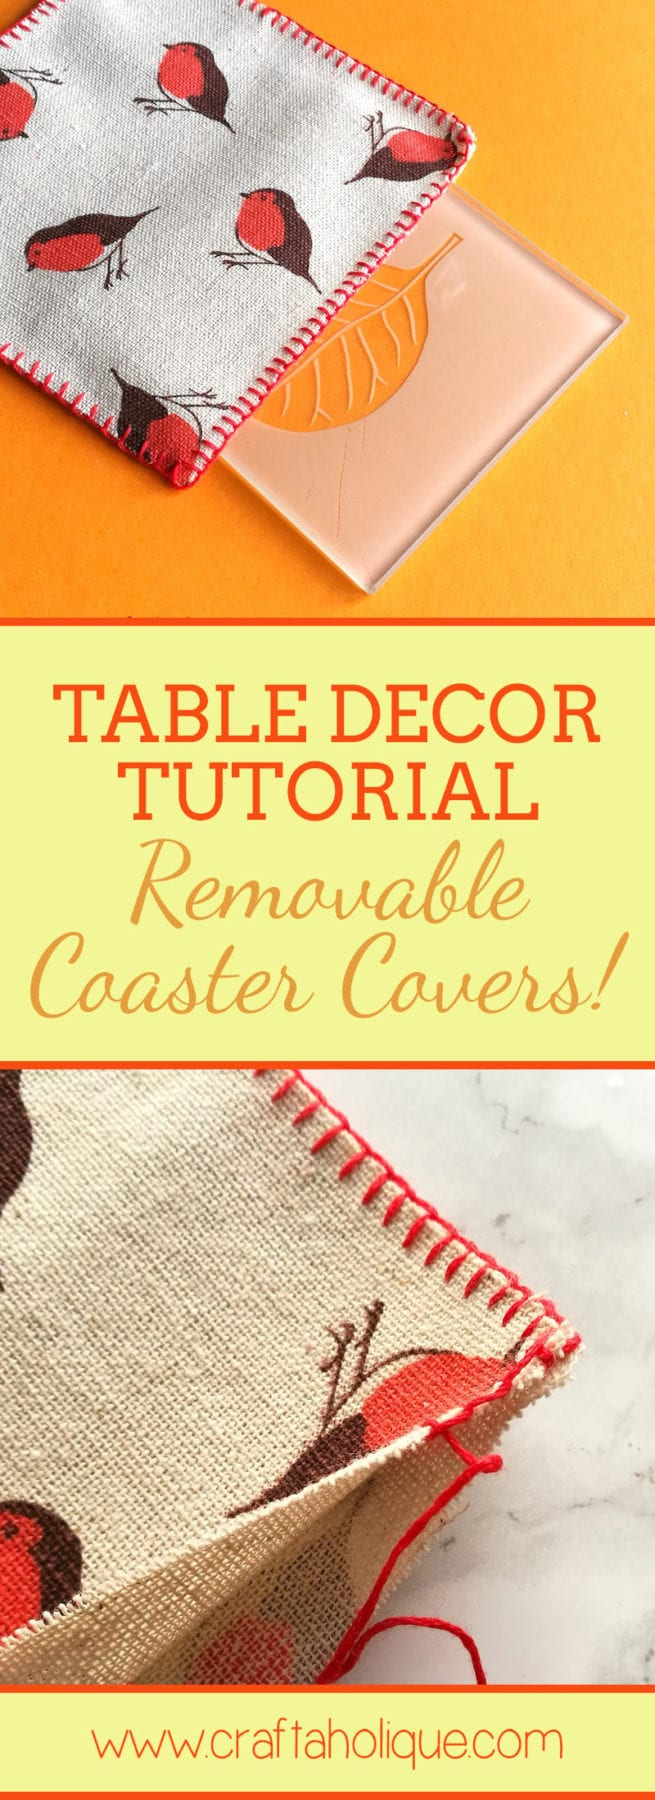 Christmas Winter table decor tutorial - coasters